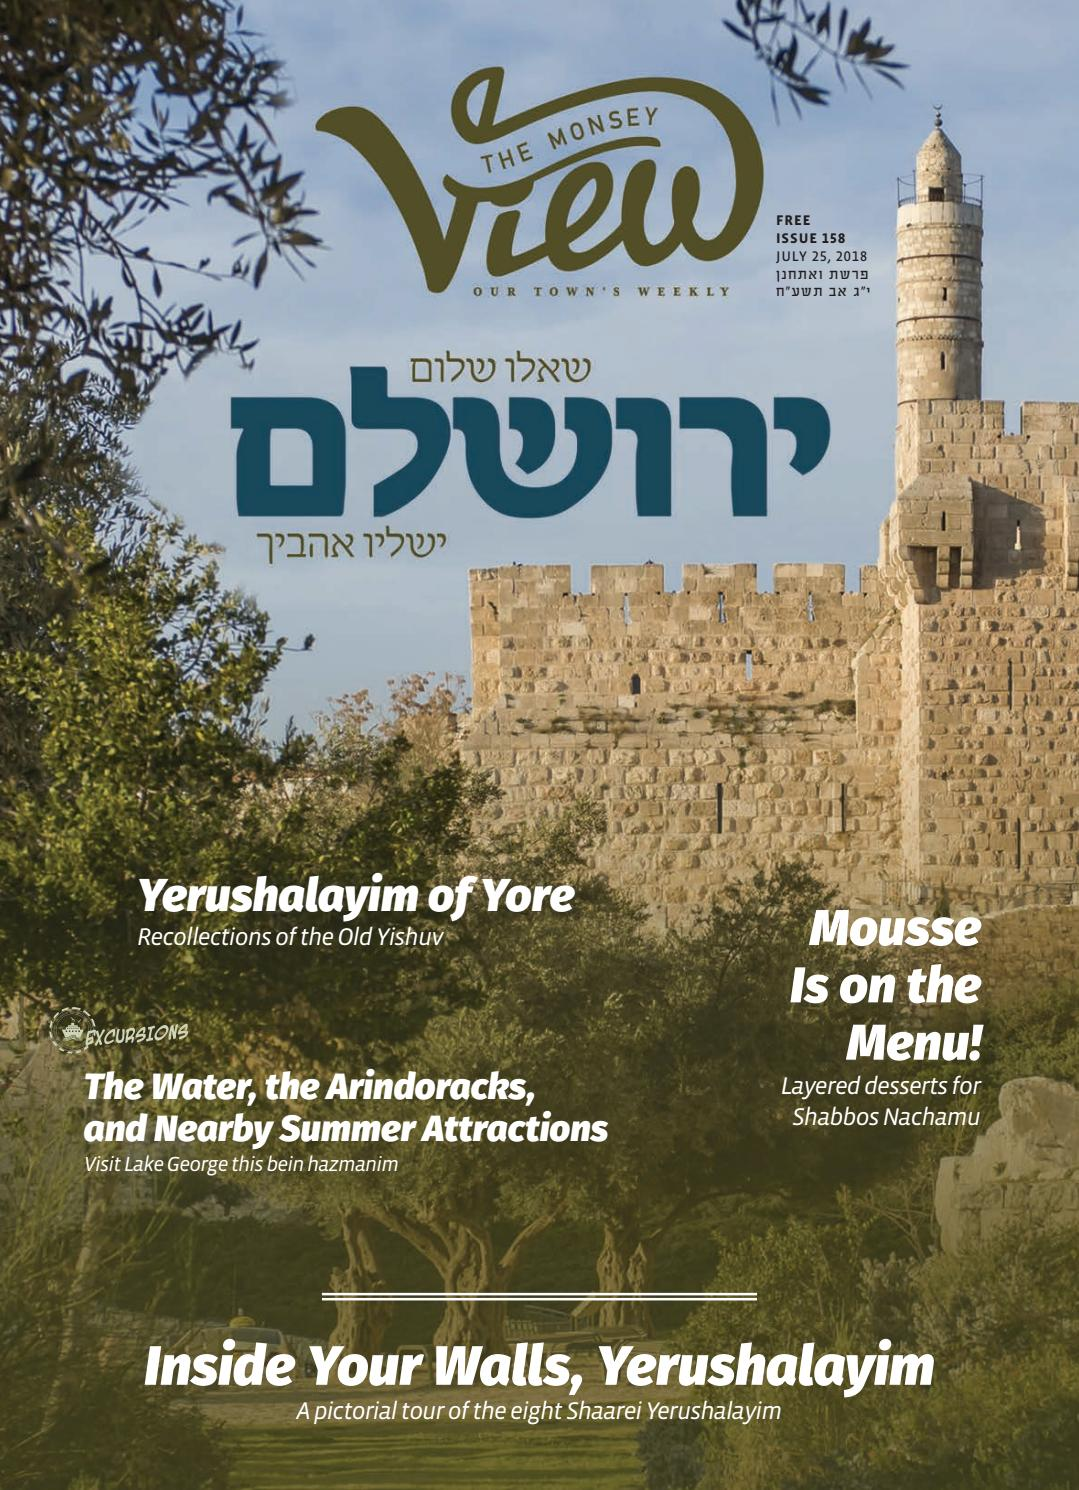 Issue 158 by The Monsey View - issuu